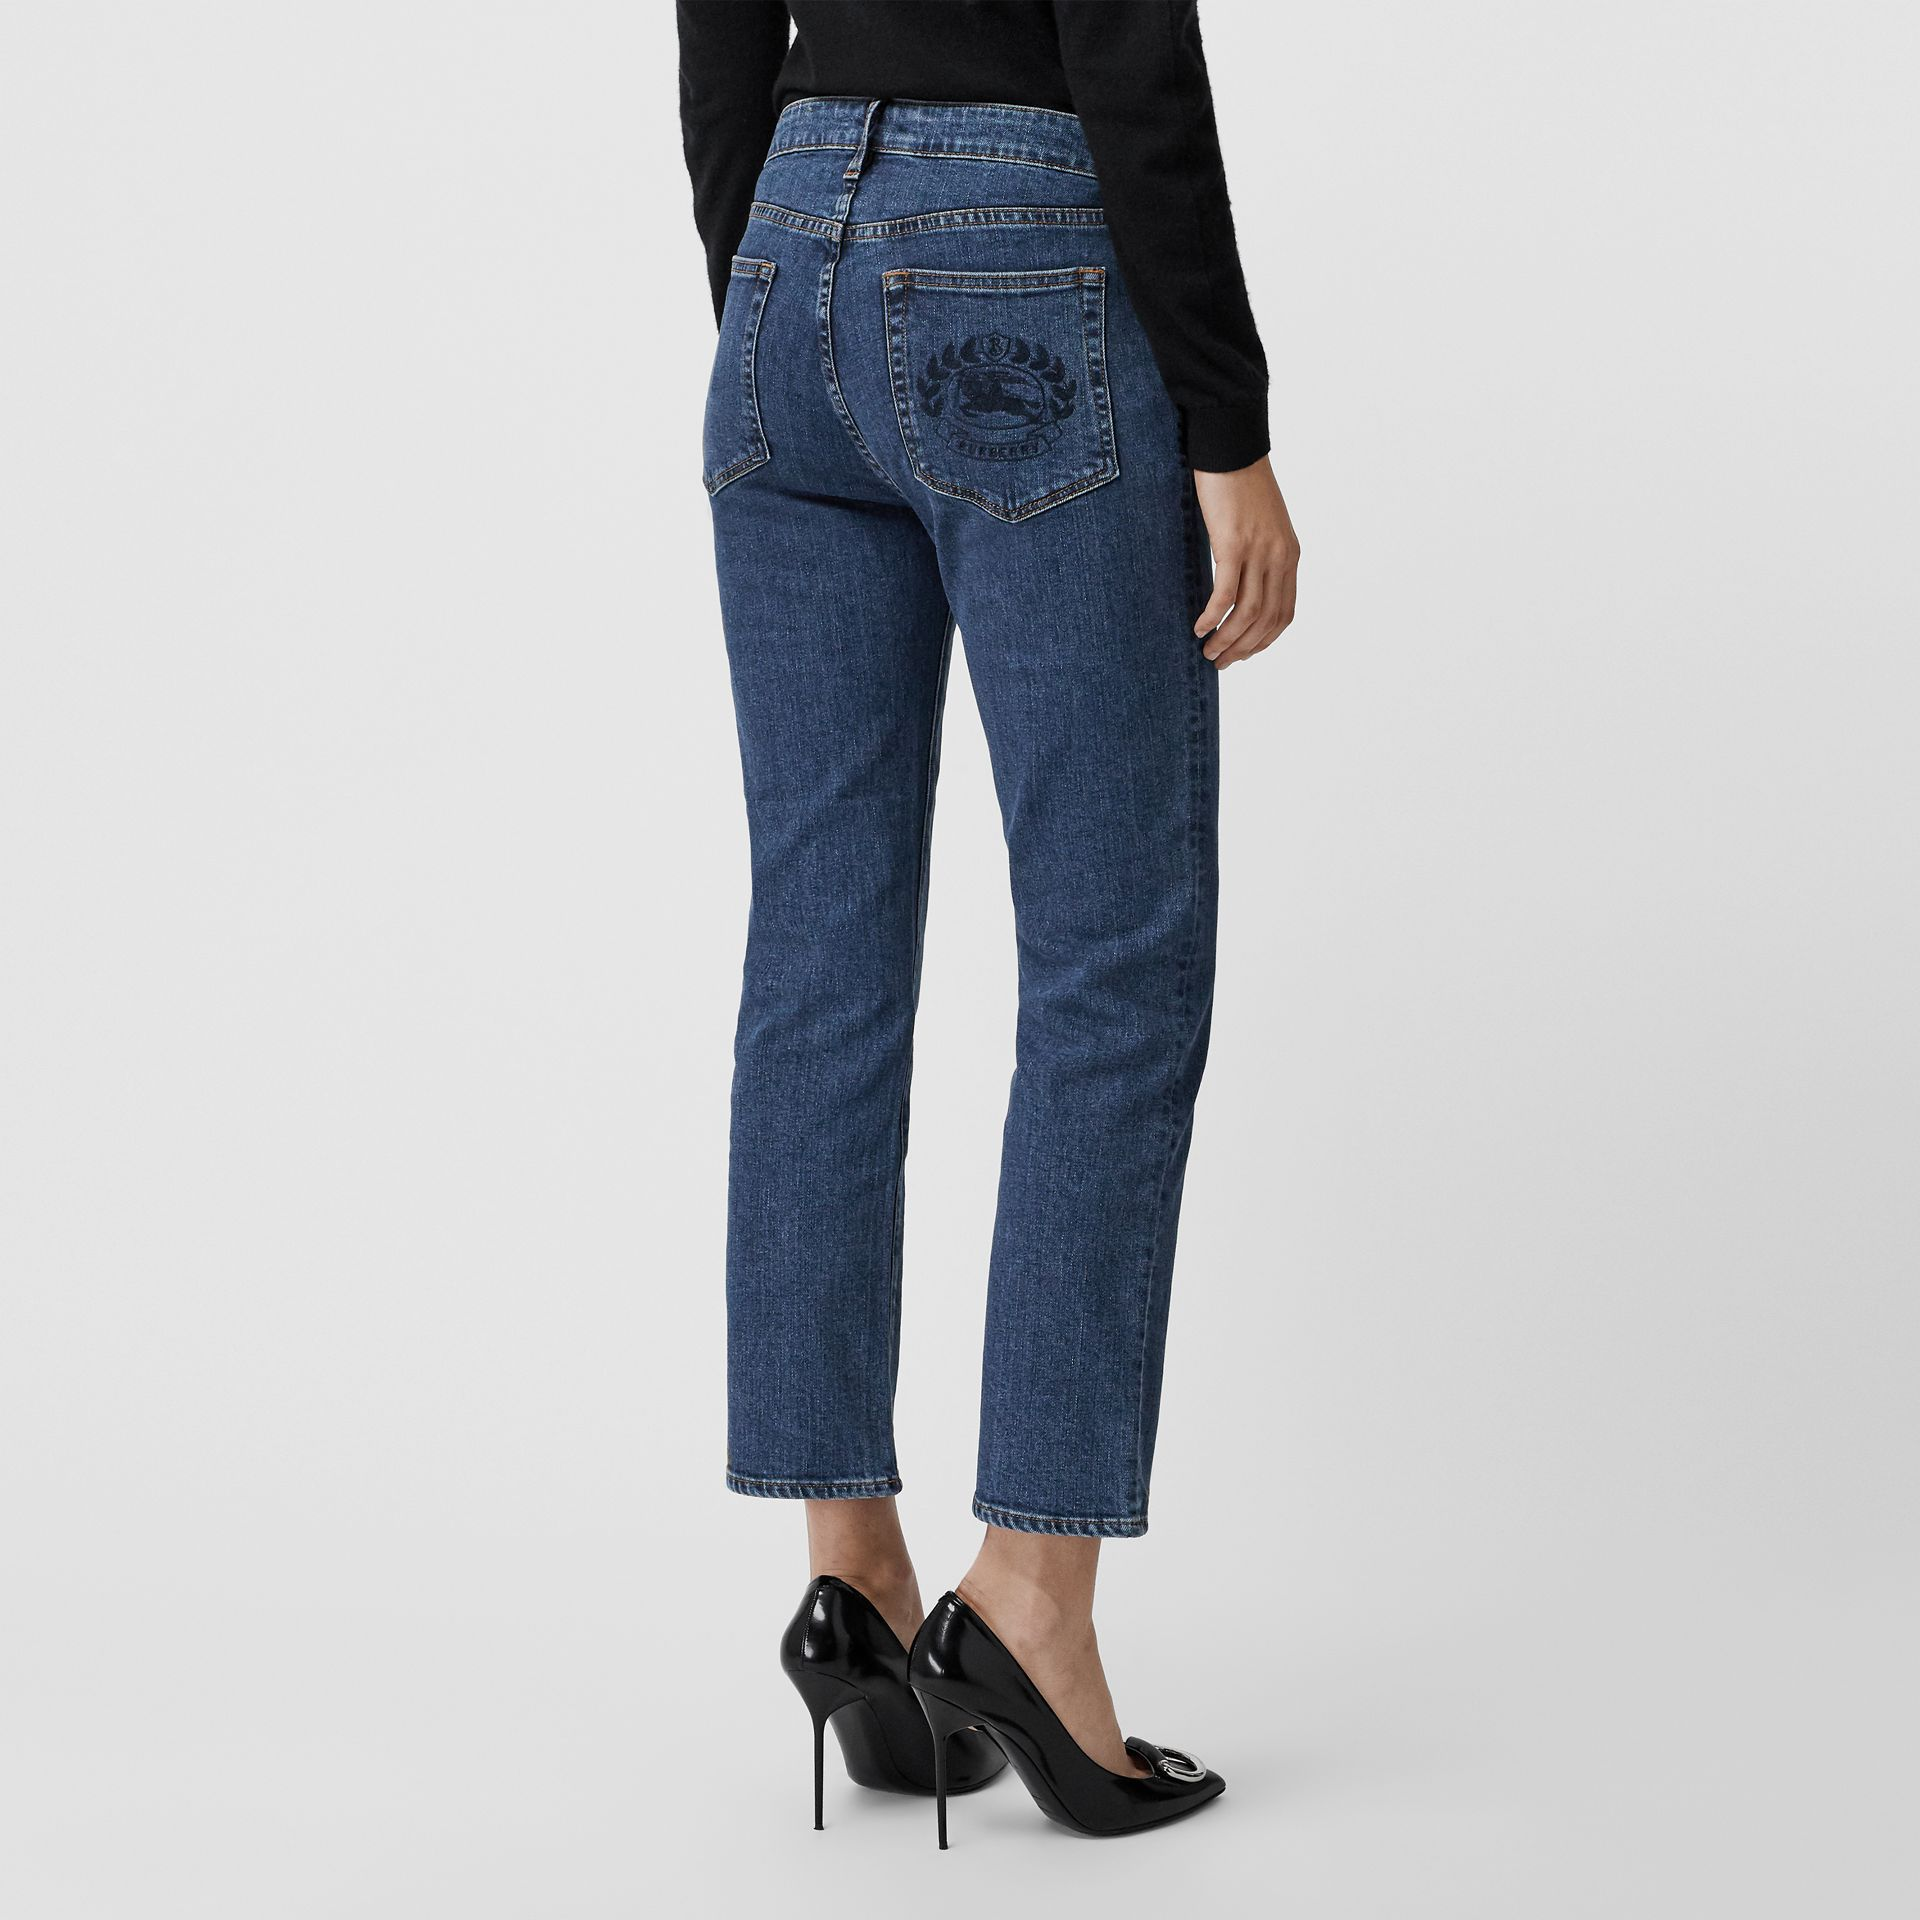 Straight Fit Japanese Denim Jeans in Blue - Women | Burberry United Kingdom - gallery image 2